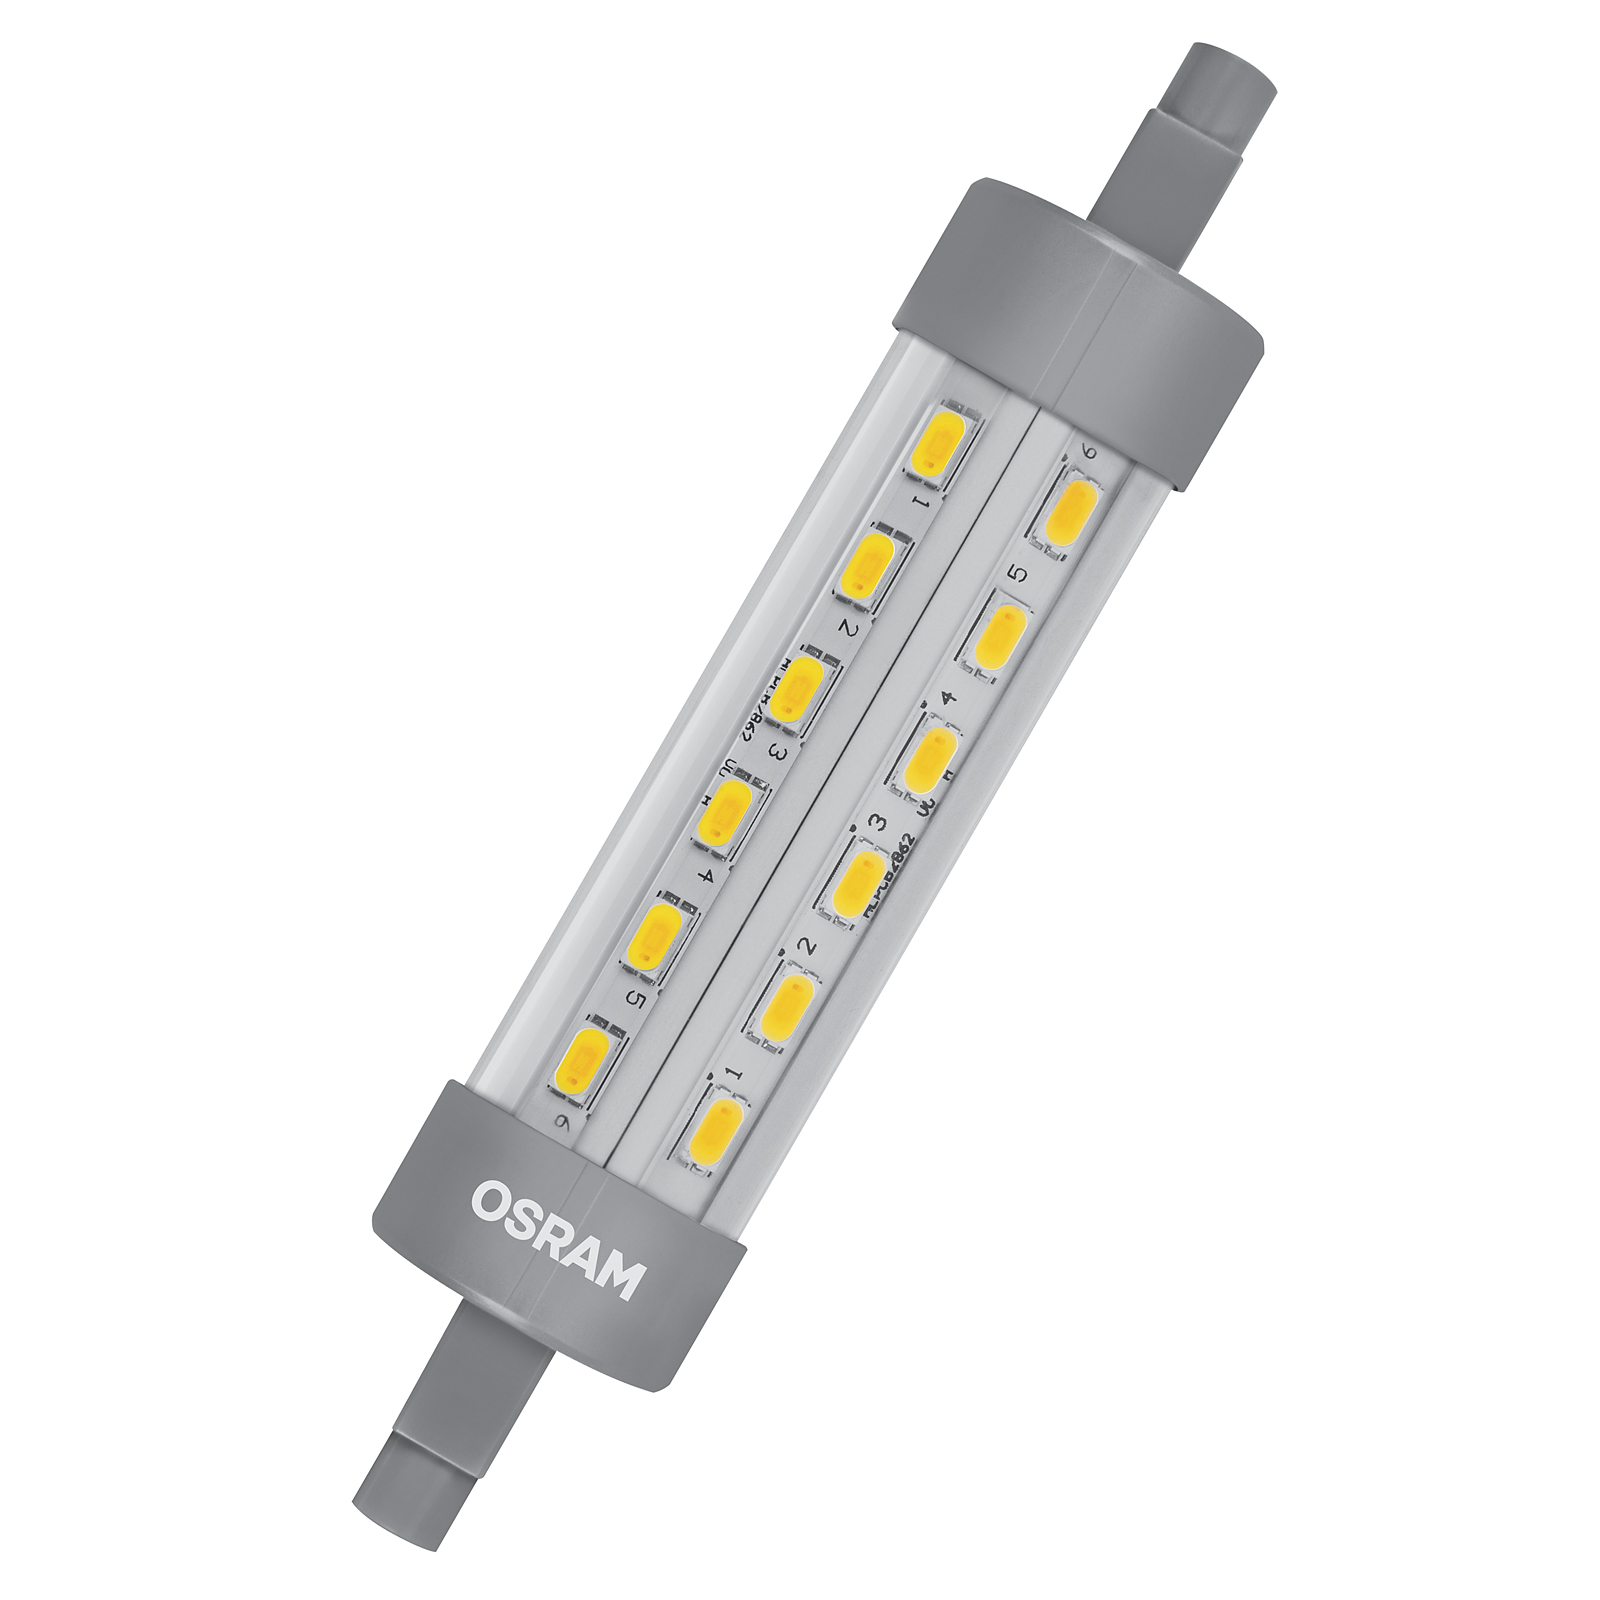 10947-OSRAM-LED-STAR-LINE-R7s-9W-ersetzt-75-Watt-1055-lm-warmweiss-Laenge-118-mm-1 Wunderbar Led Mr11 Gu4 Warmweiss Dekorationen